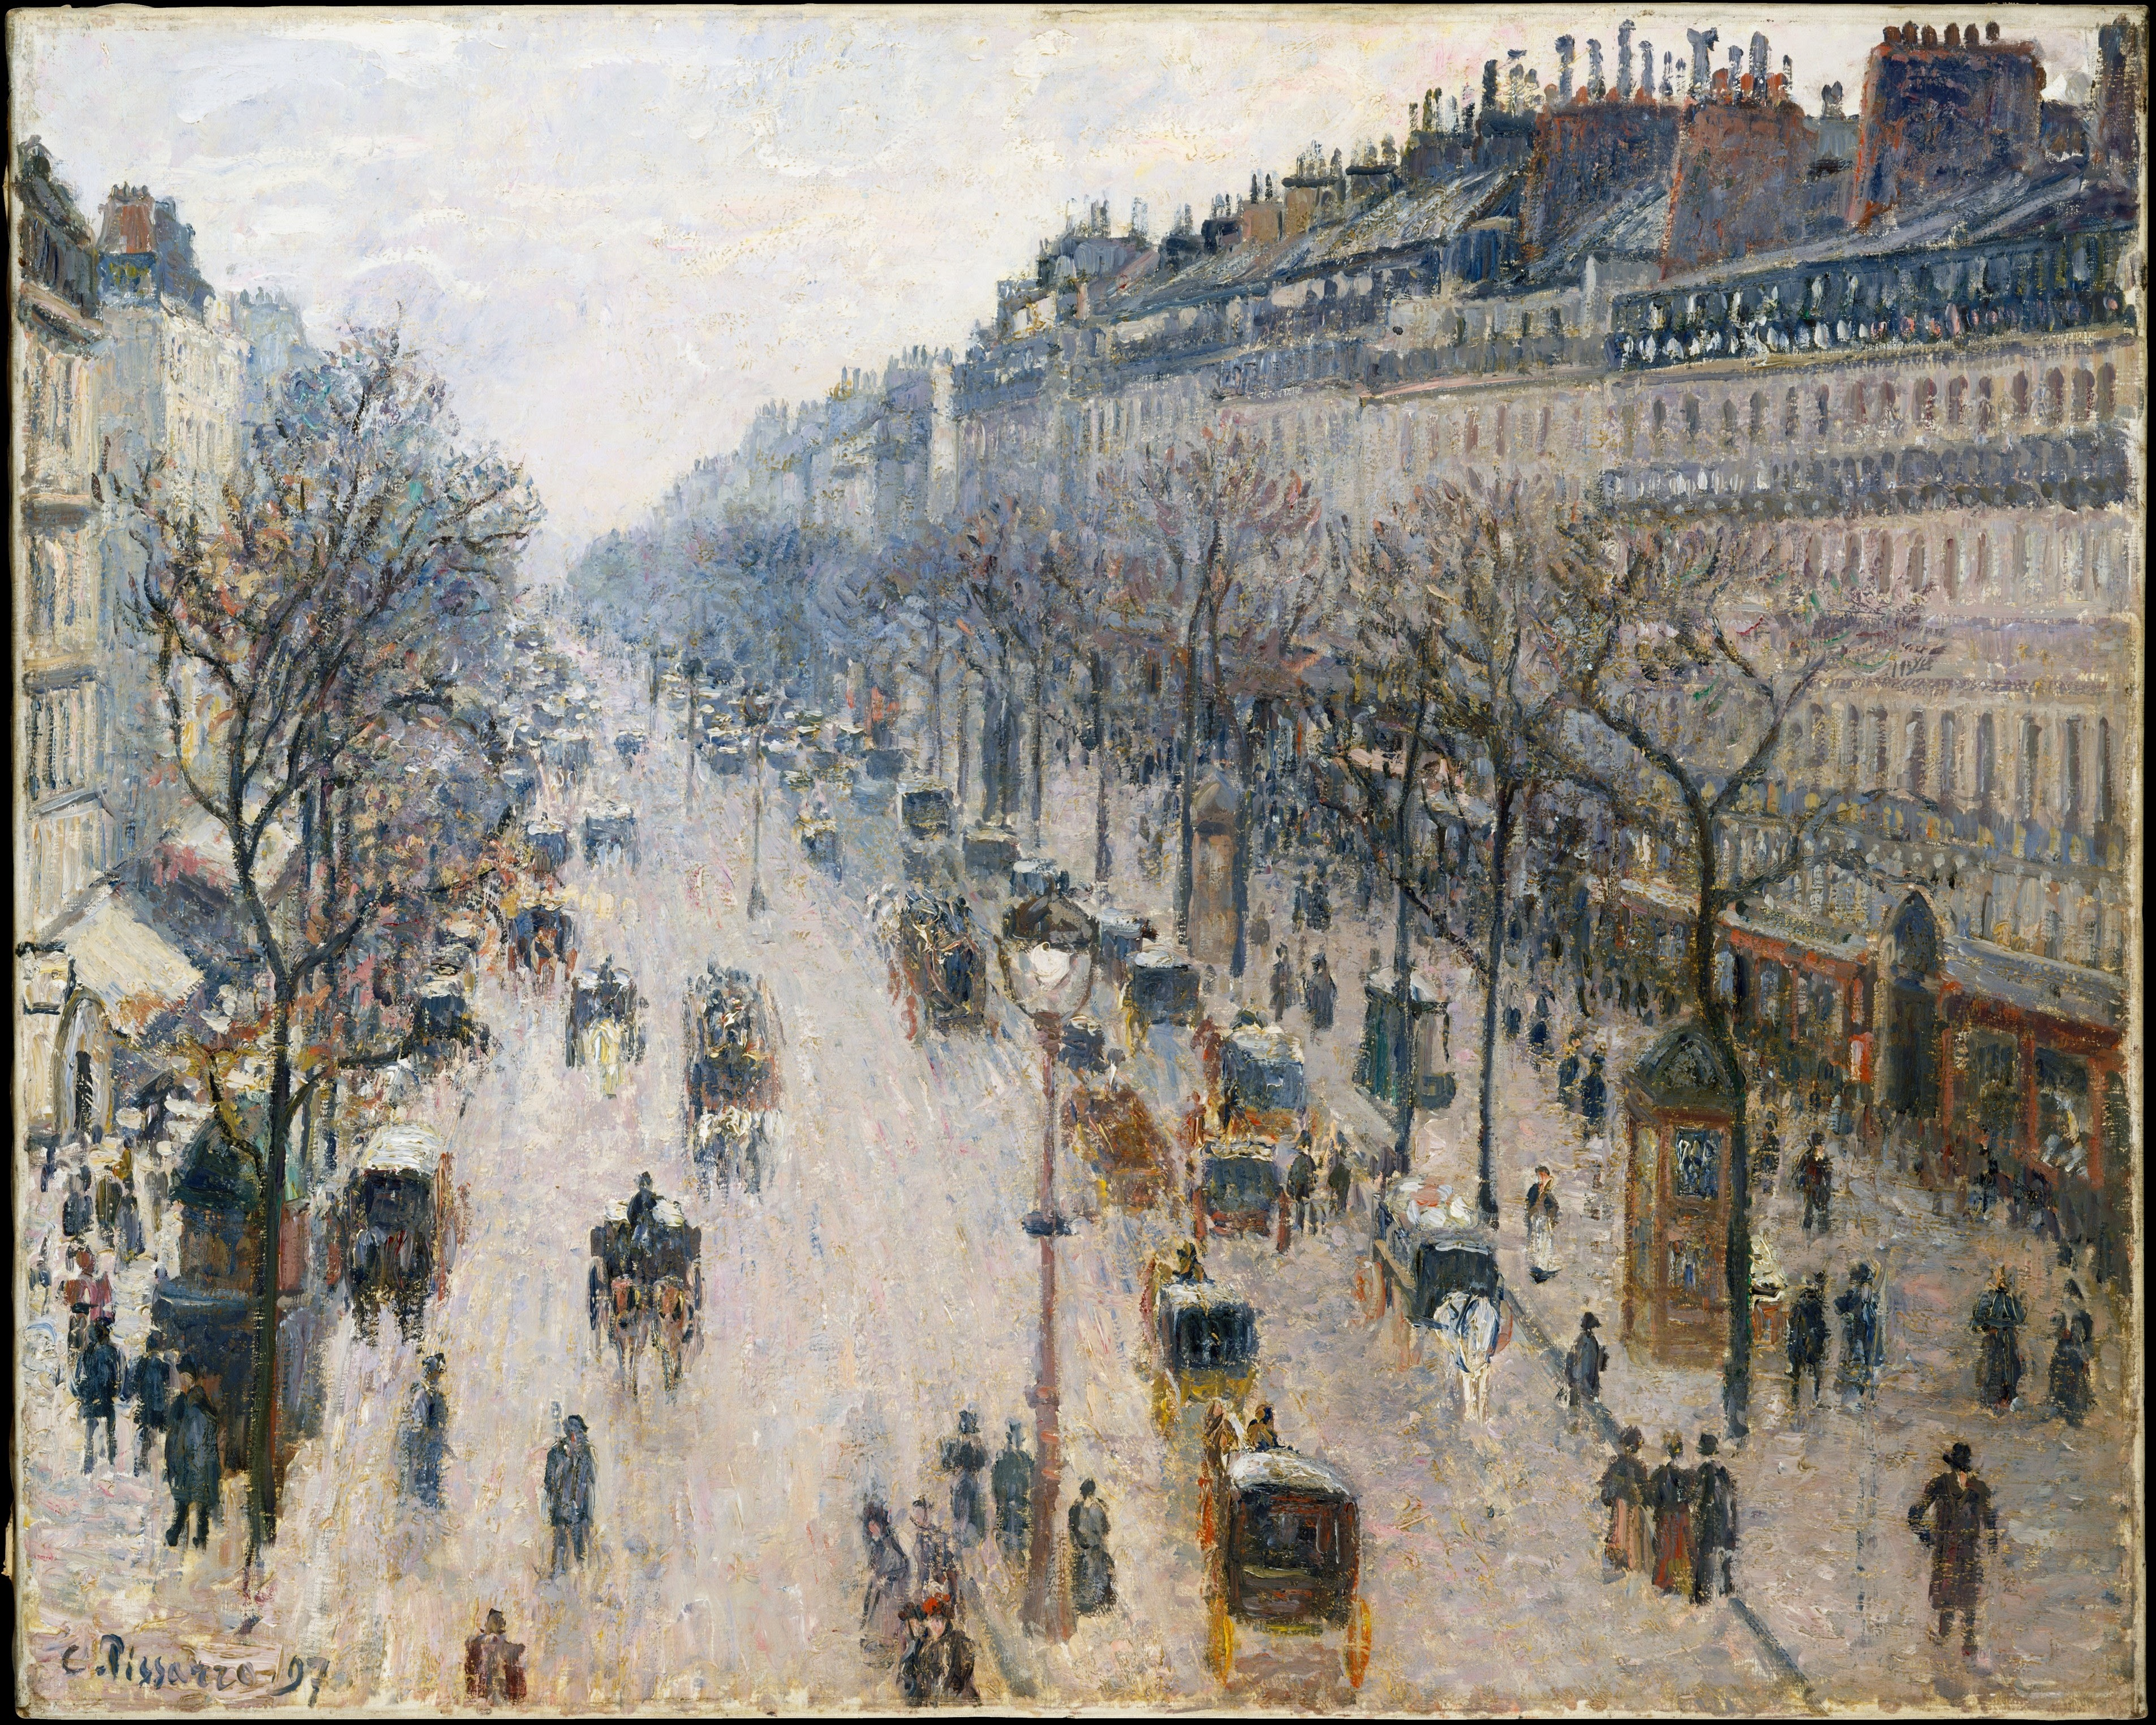 The Boulevard Montmartre on a Winter Morning,1897 by Camille Pissarro